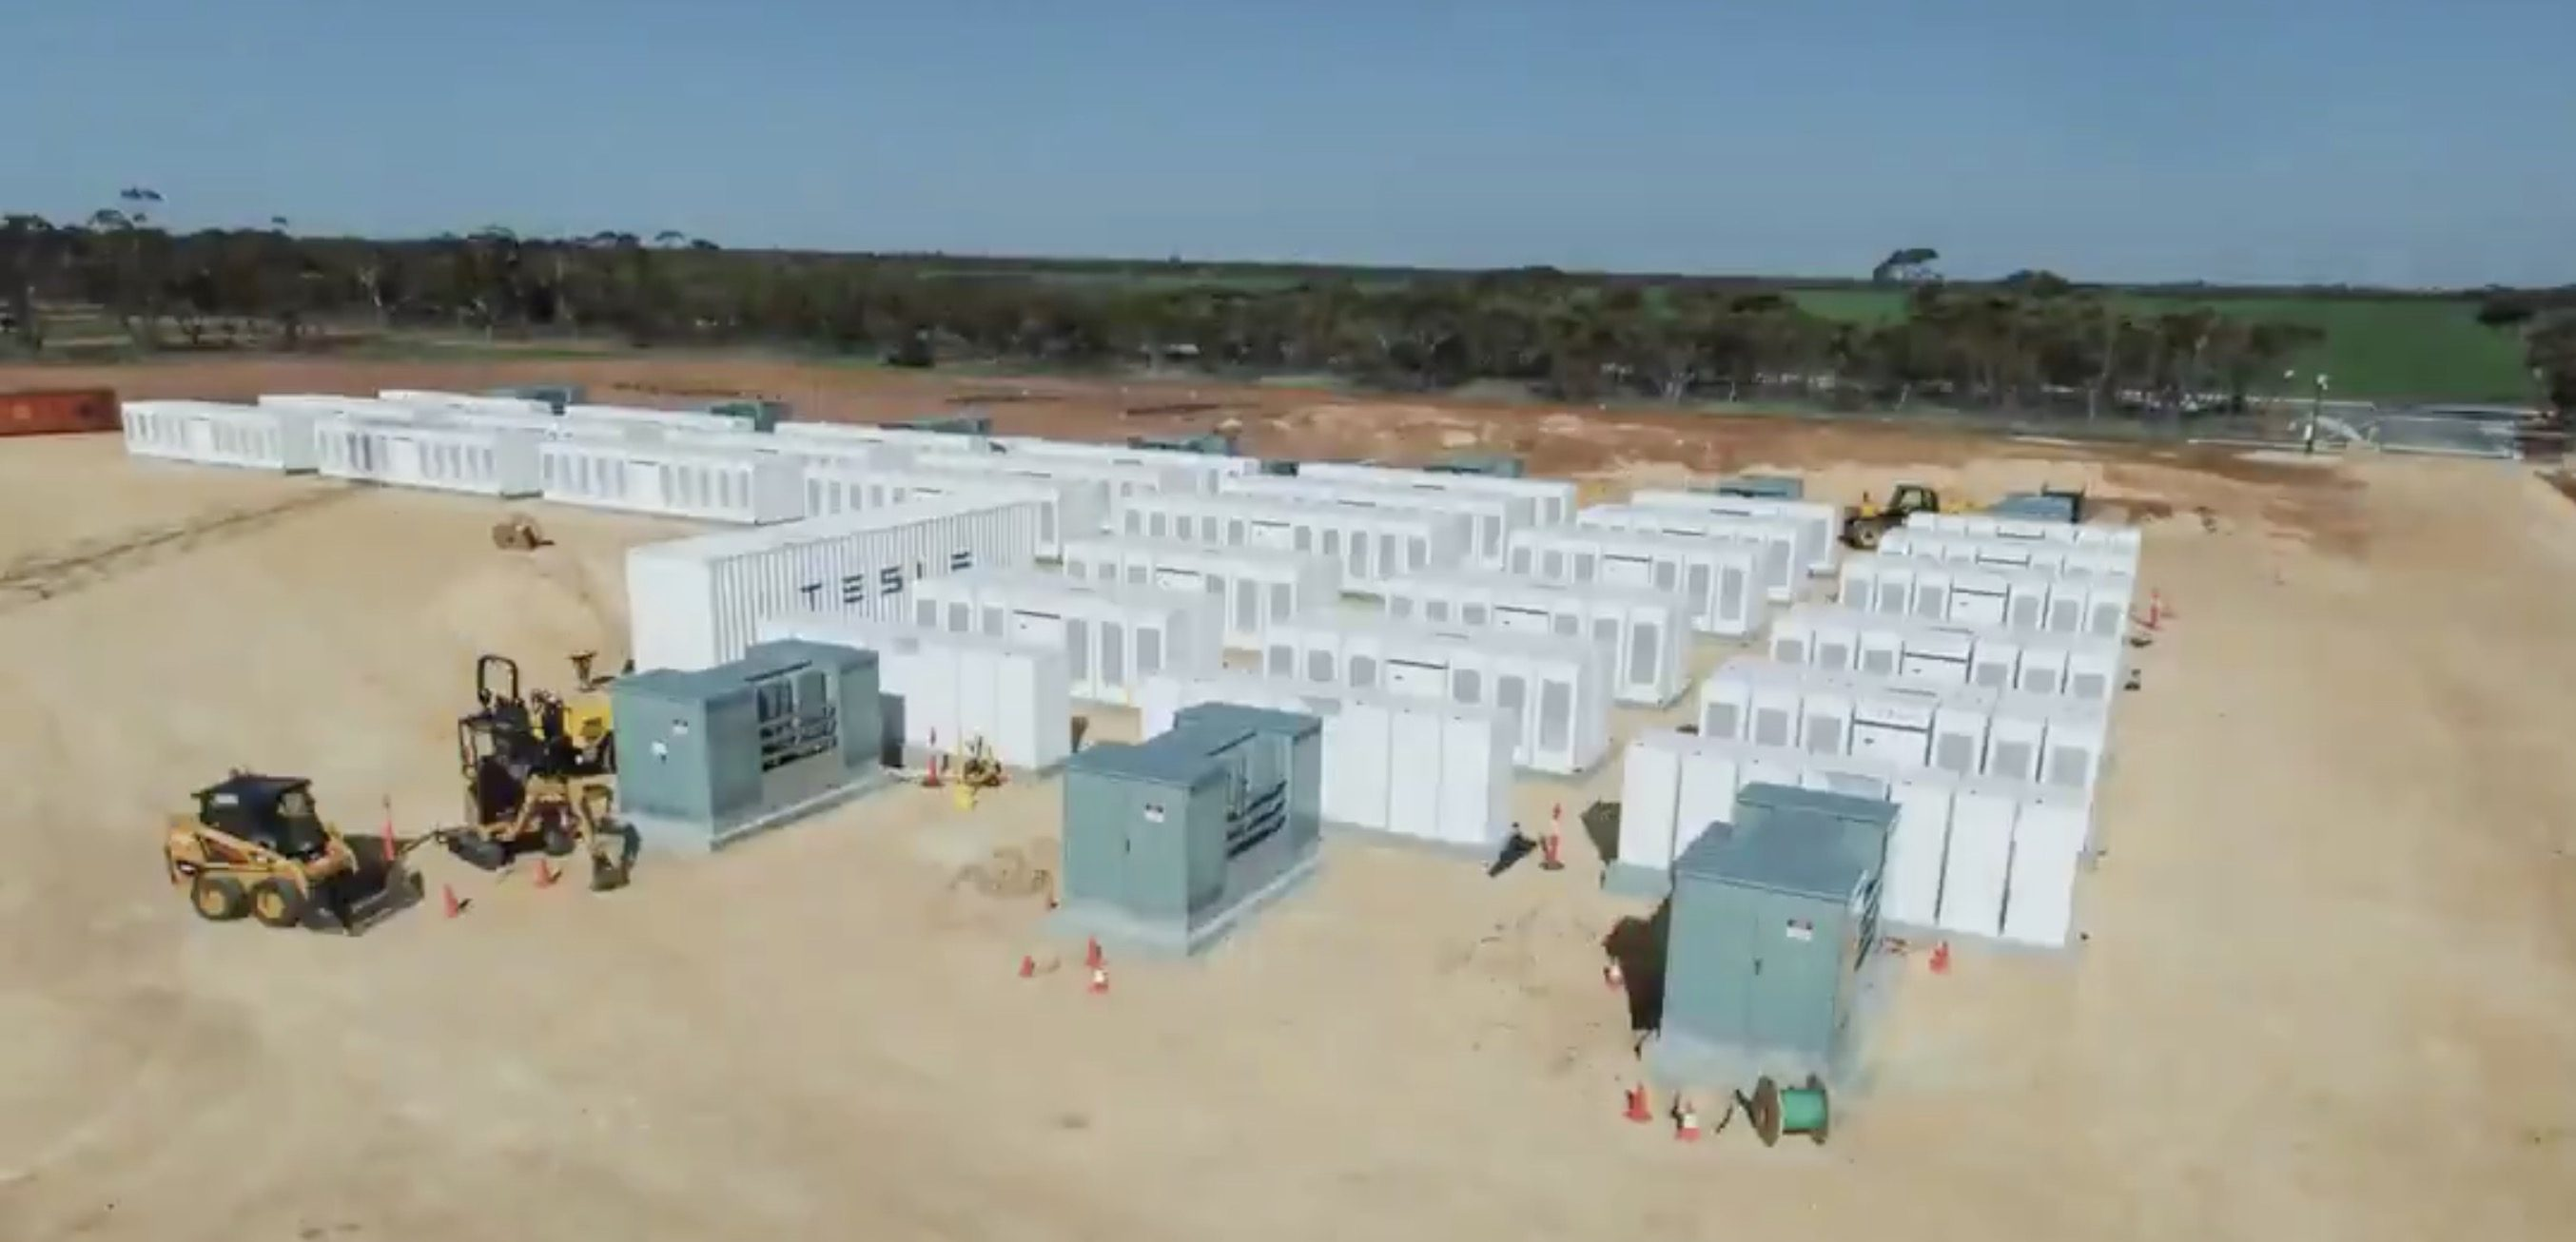 Tesla's new Megapack to debut at giant energy storage project in California